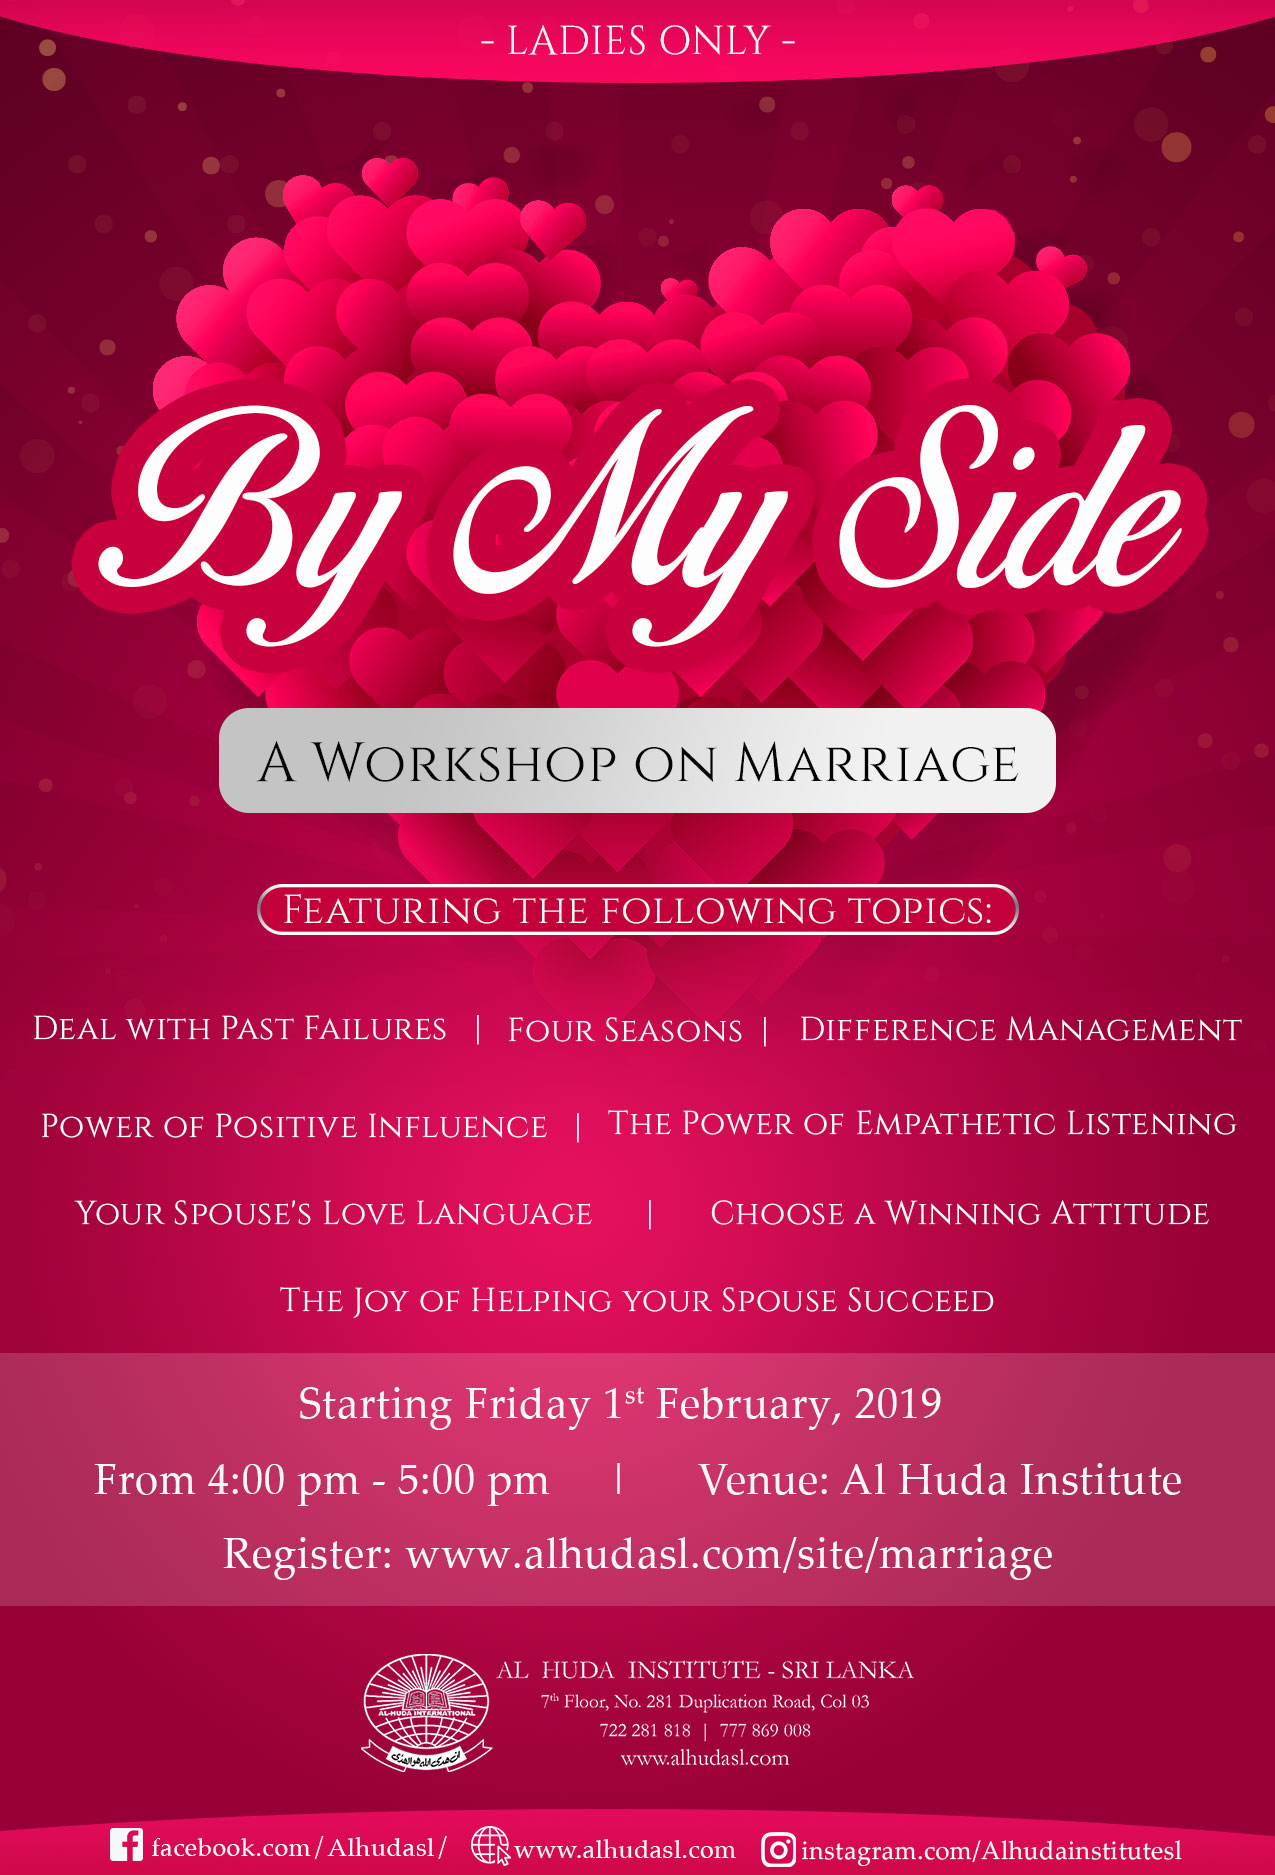 Marriage – Al Huda Institute Sri Lanka